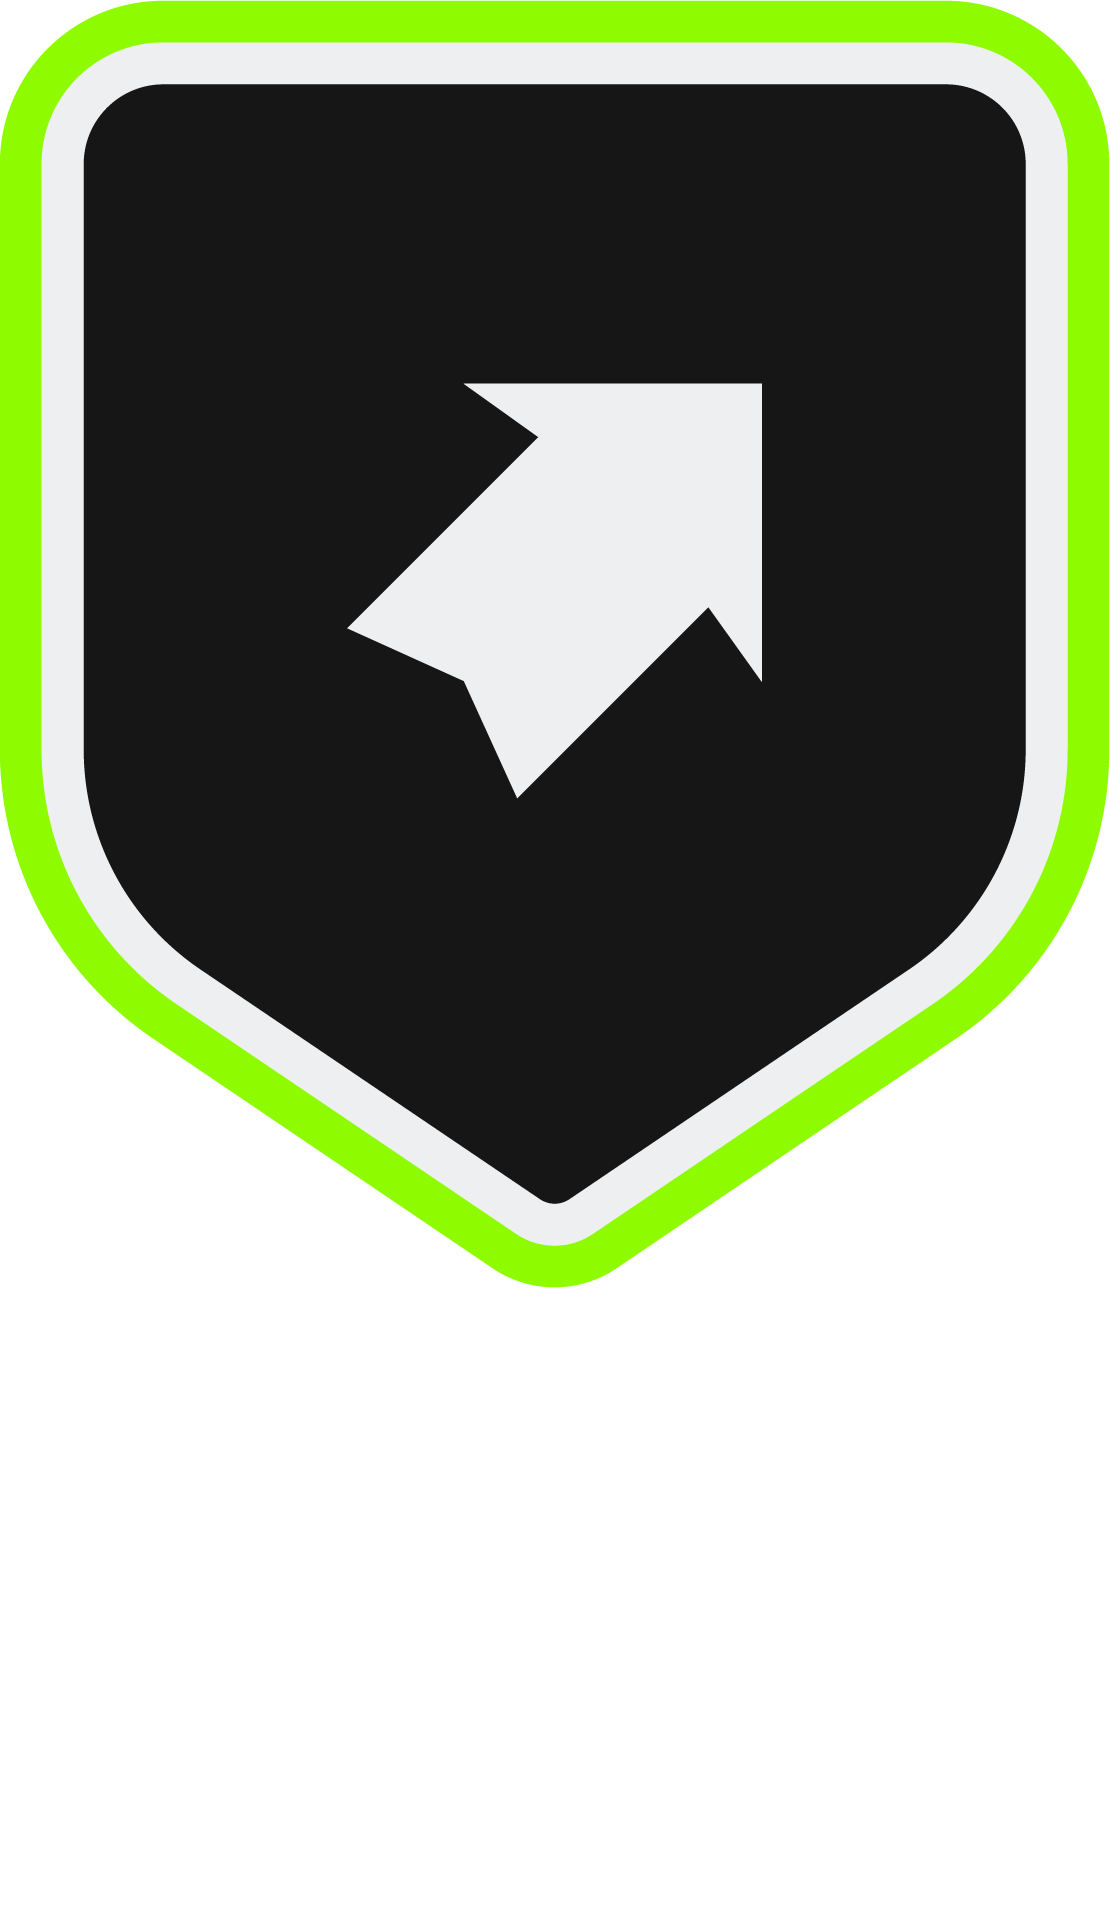 Rise Up - Week 7